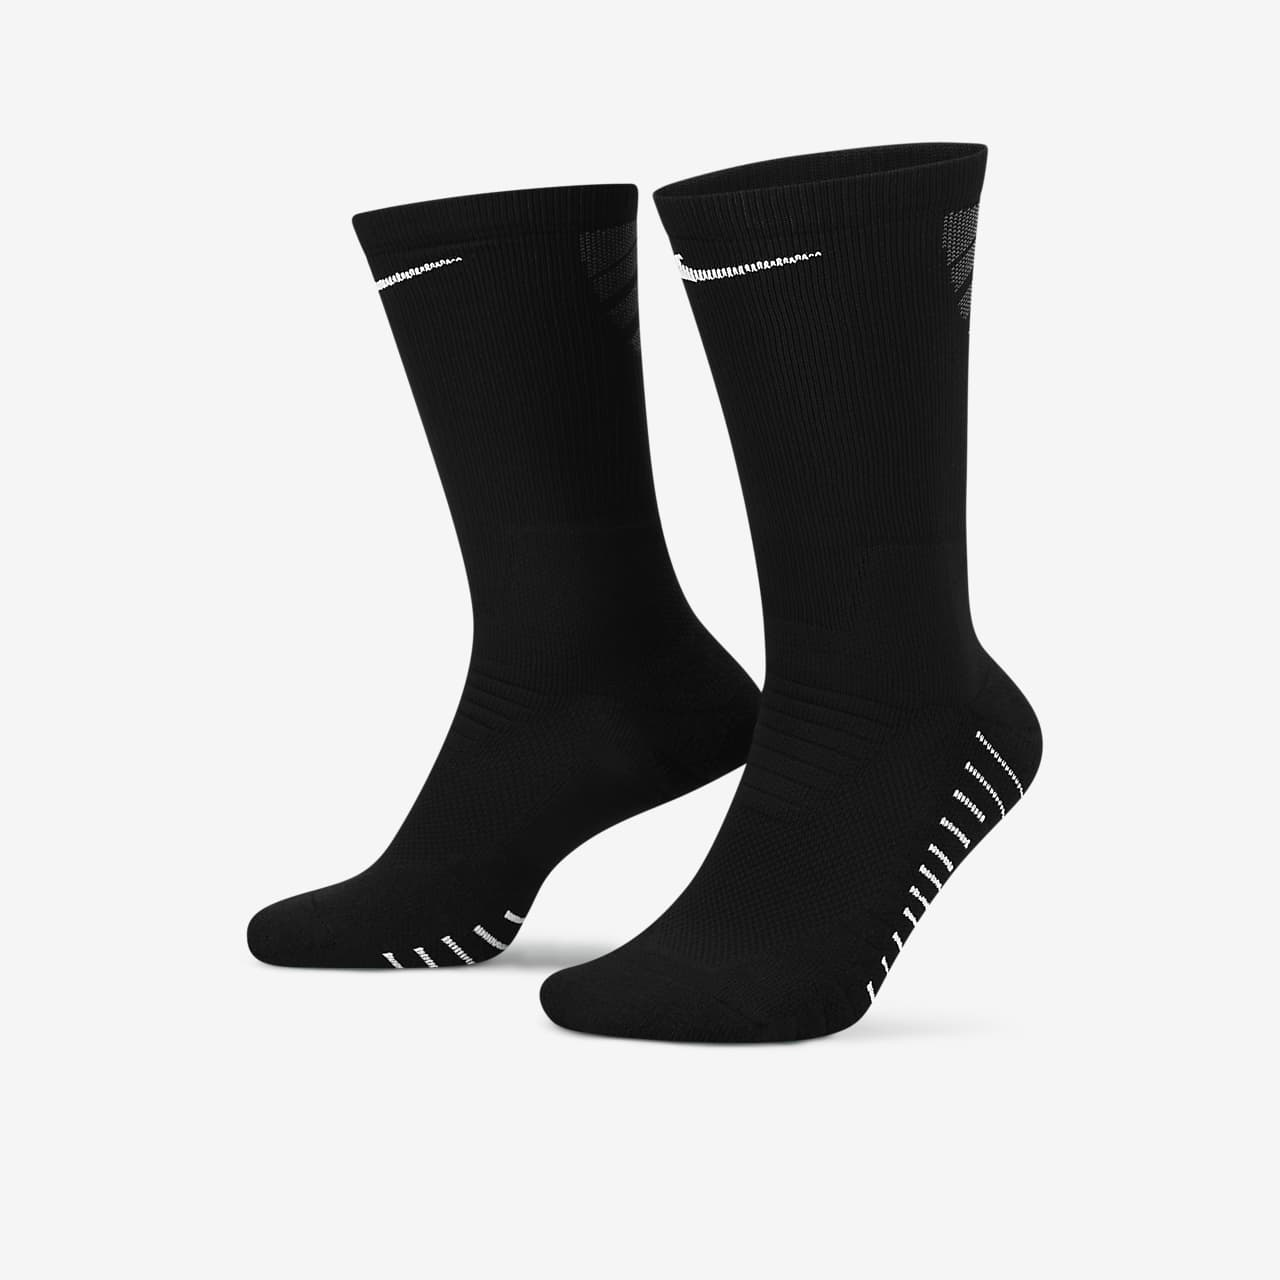 Nike Vapor Crew Men's Football Socks